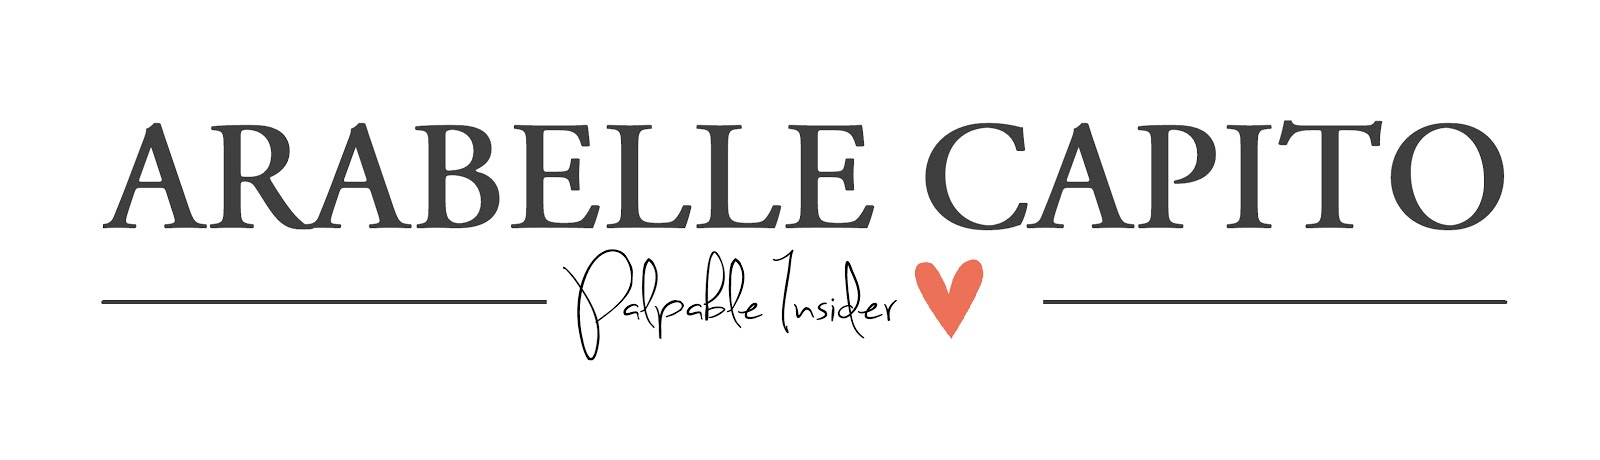 Arabelle Capito as Palpable Insider